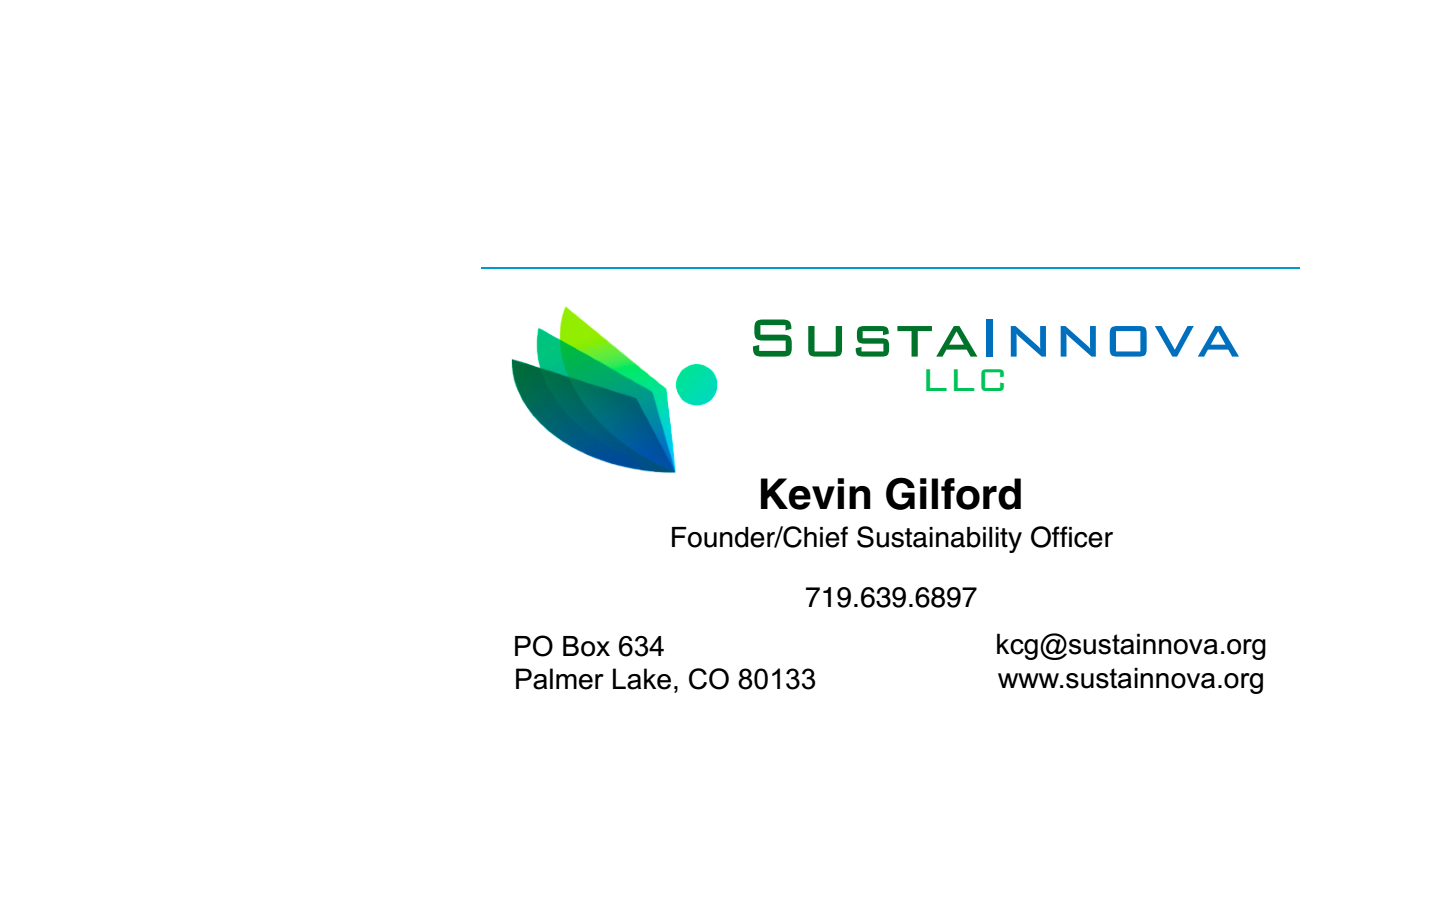 BusinessCard-front